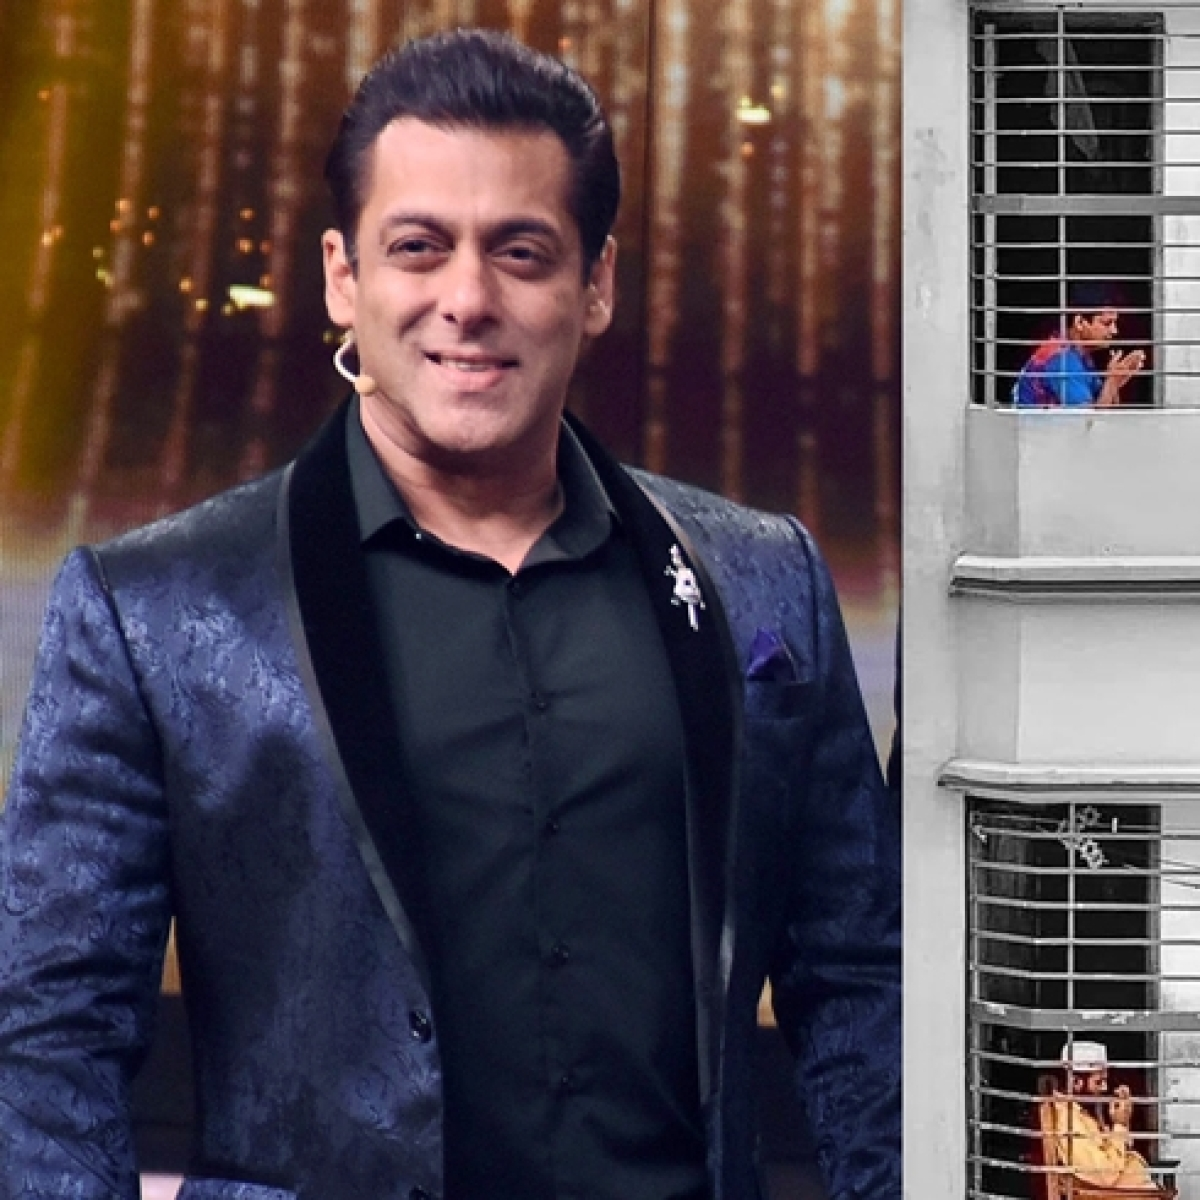 Amid coronavirus pandemic, Salman Khan has an important message against bigots